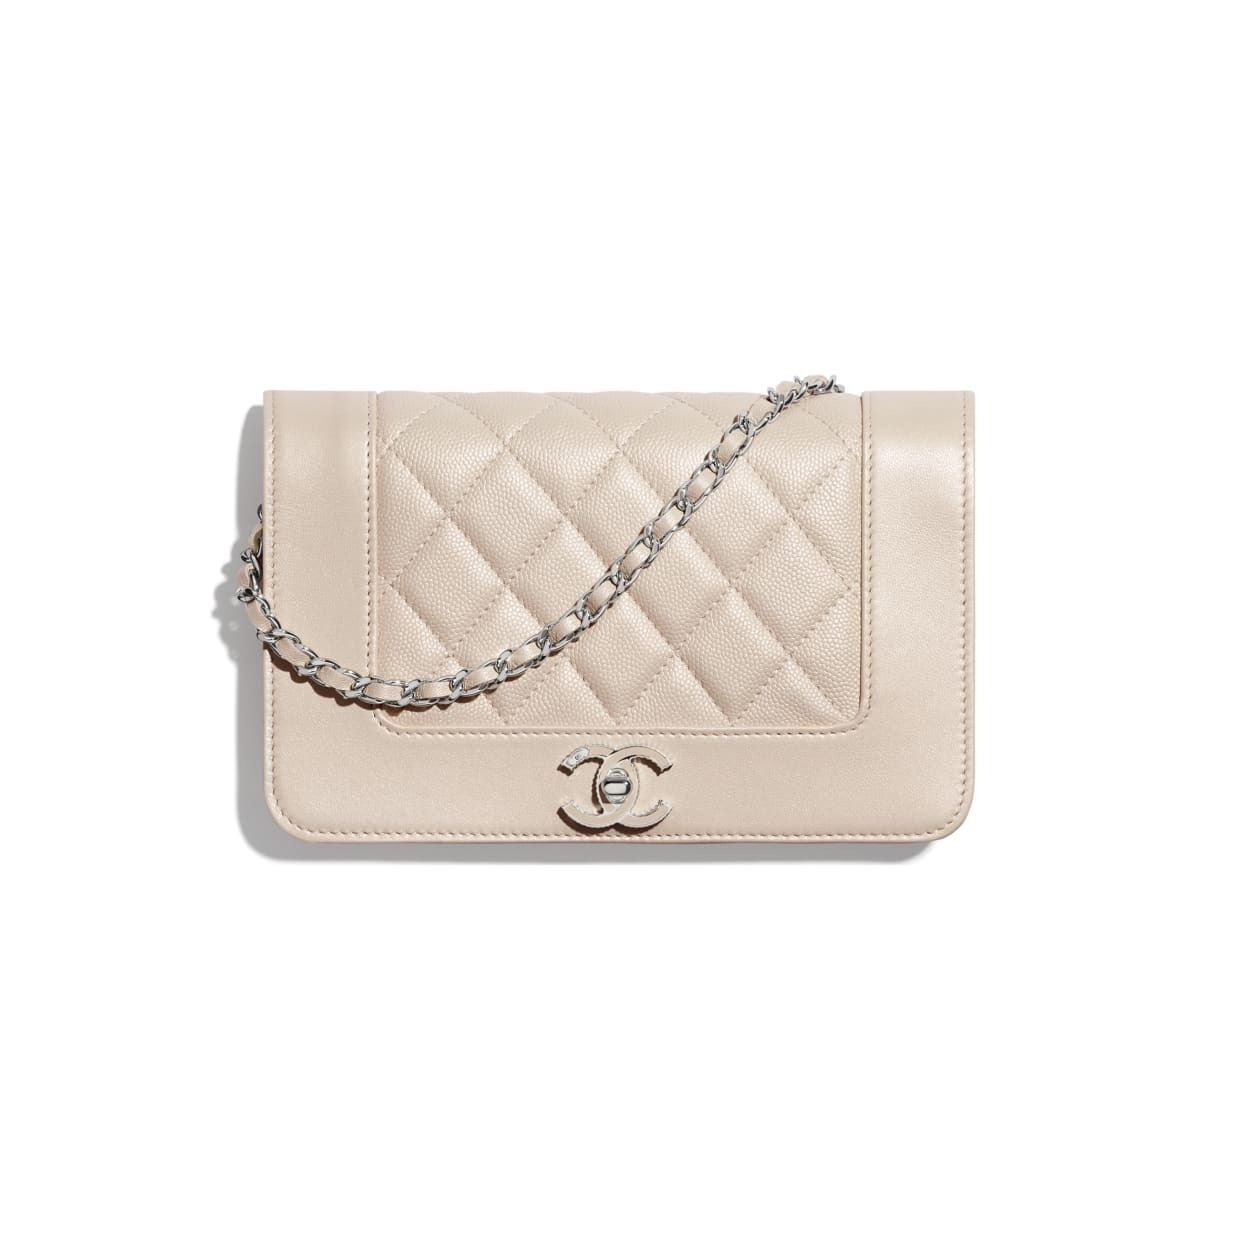 CHANEL CHANEL ☆wallet on chain ☆A80972 B03213 N7374